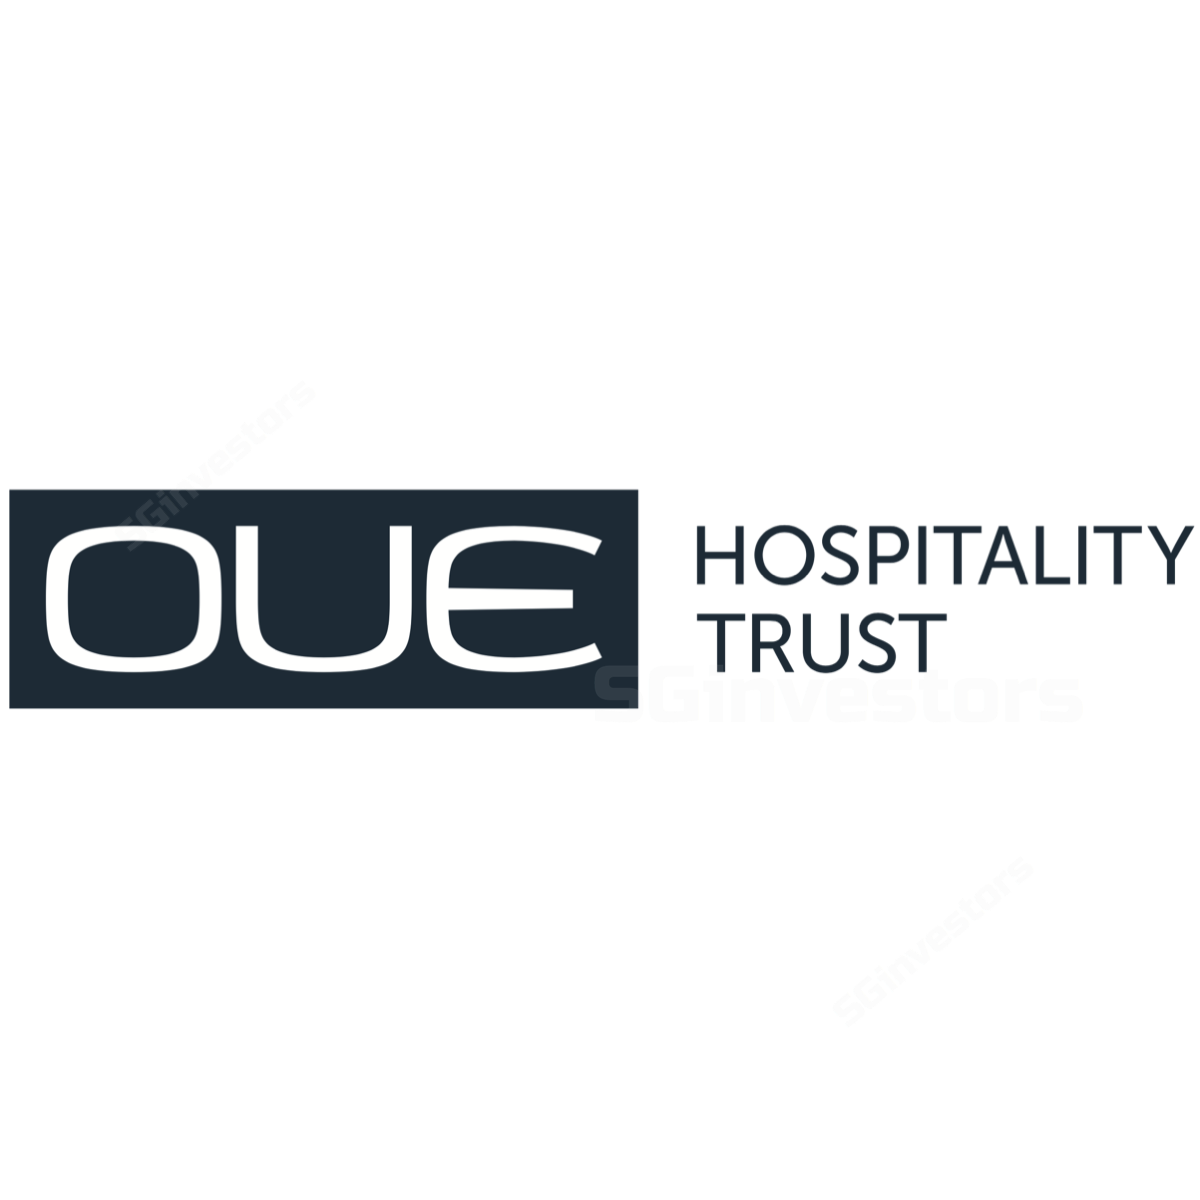 OUE Hospitality Trust - RHB Invest 2017-05-15: Key Notes From Investor Luncheon